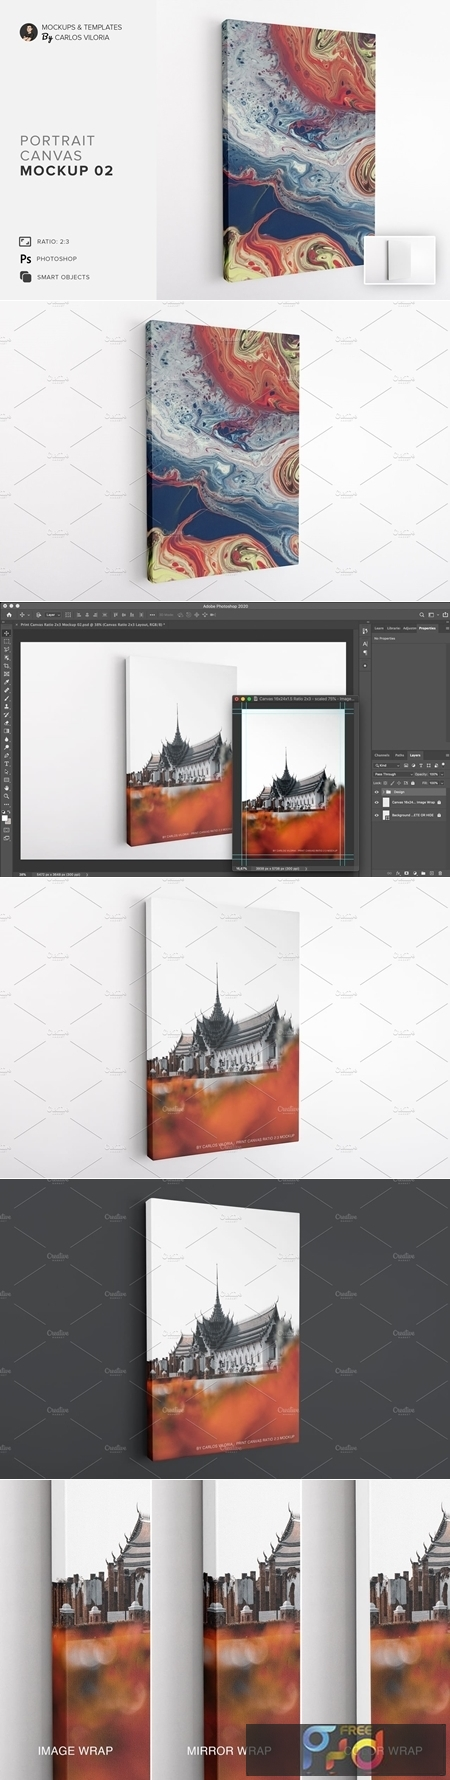 Portrait Canvas Ratio 2x3 Mockup 02 4637526 1